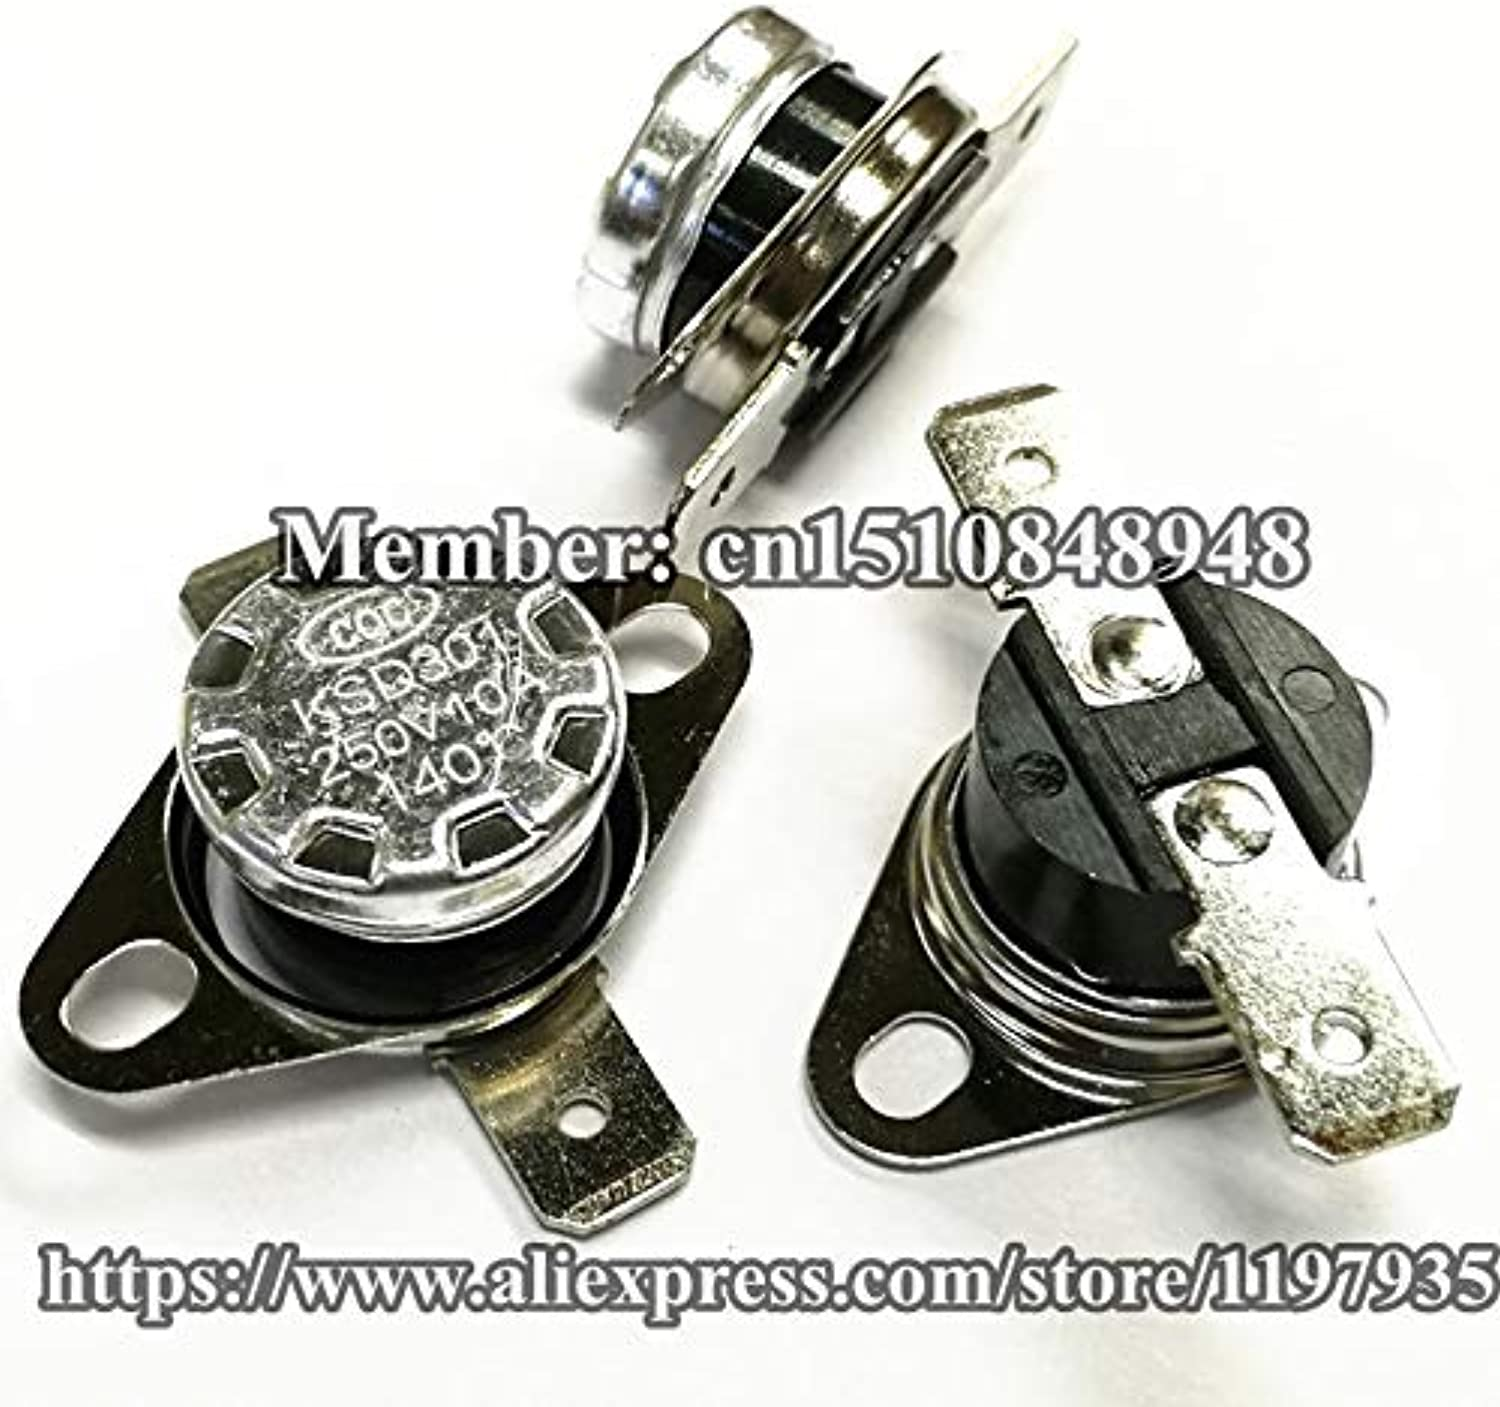 Thermostat Temperature Switch KSD301 140 Degrees 250V 10A 140 Degrees 140C Normally Closed